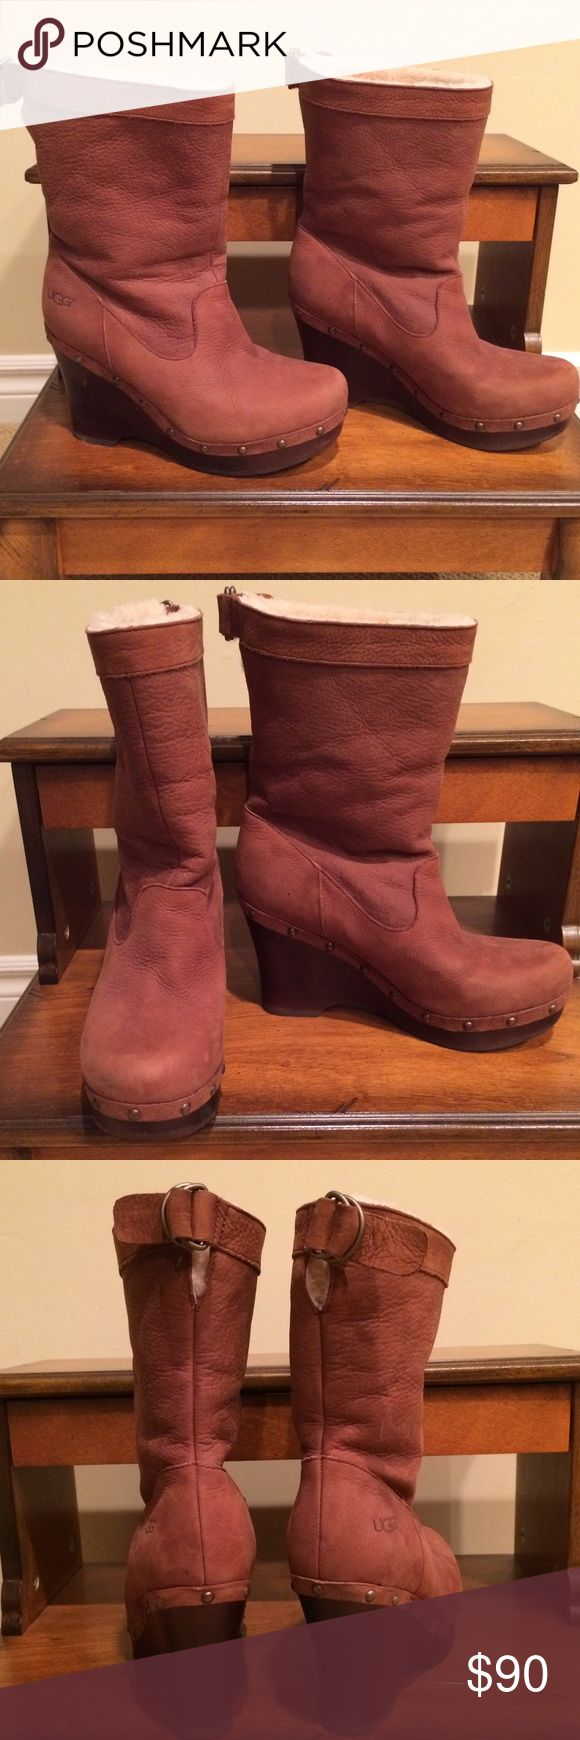 Size 8 Ugg boots. Worn twice. Almost new. Size 8 Ugg boots. Worn twice. Almost new and in excellent condition. Camel color. Platt Form style. Front heel 1 inch. Heels, 4 inches. No box. I tossed it after I bought them from the Ugg store at the Fashion Valley Mall in San Diego. UGG Shoes Ankle Boots & Booties